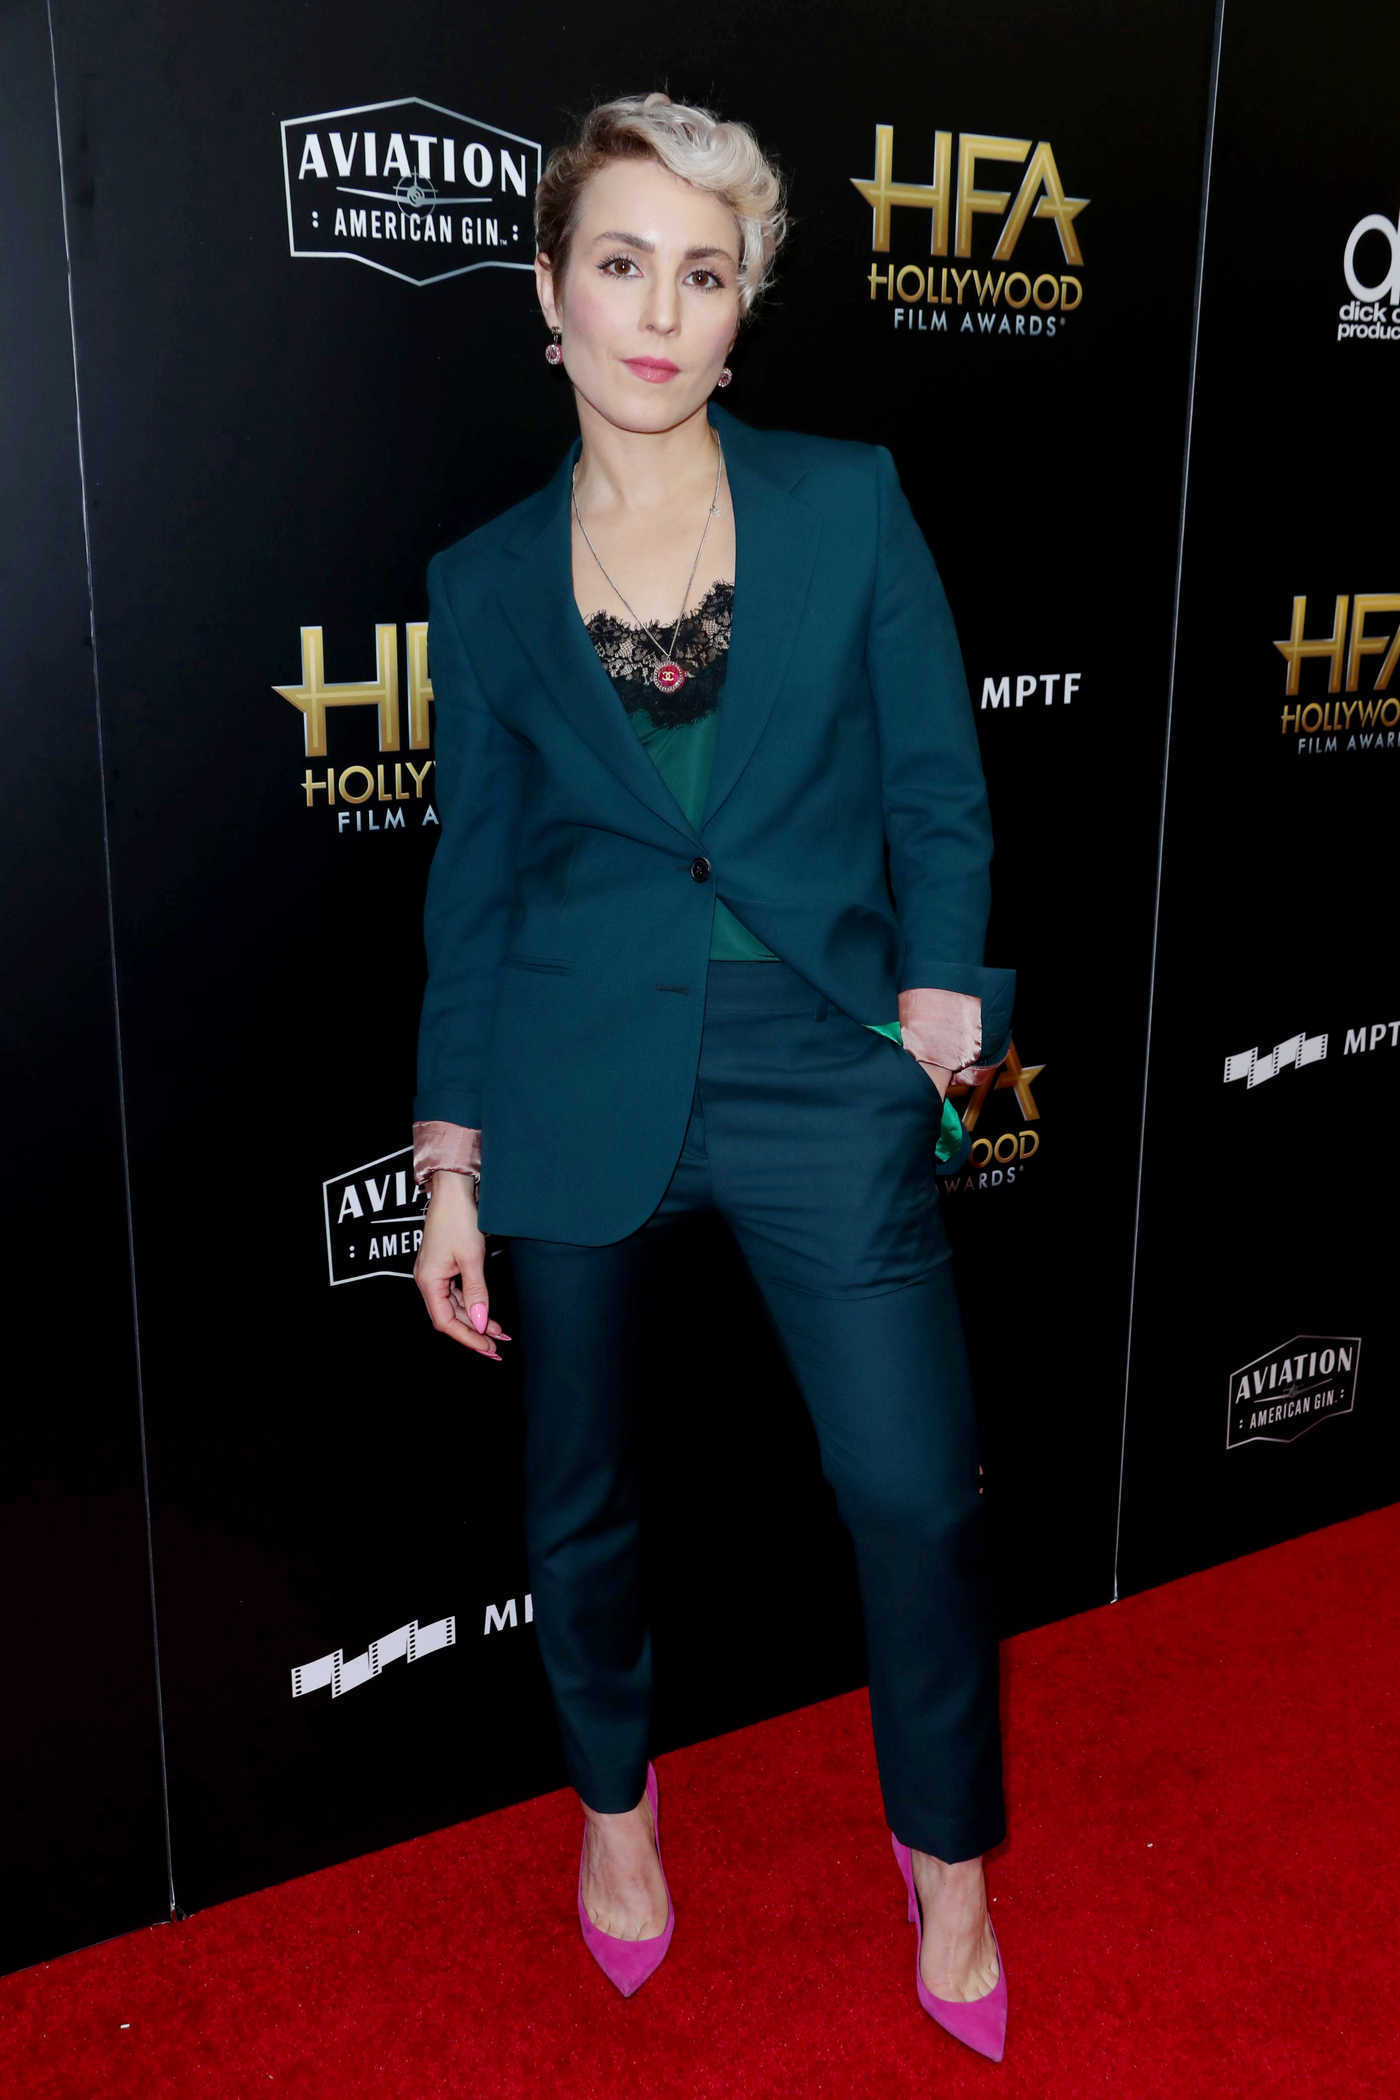 Noomi Rapace at the 21st Annual Hollywood Film Awards in Los Angeles 11/05/2017